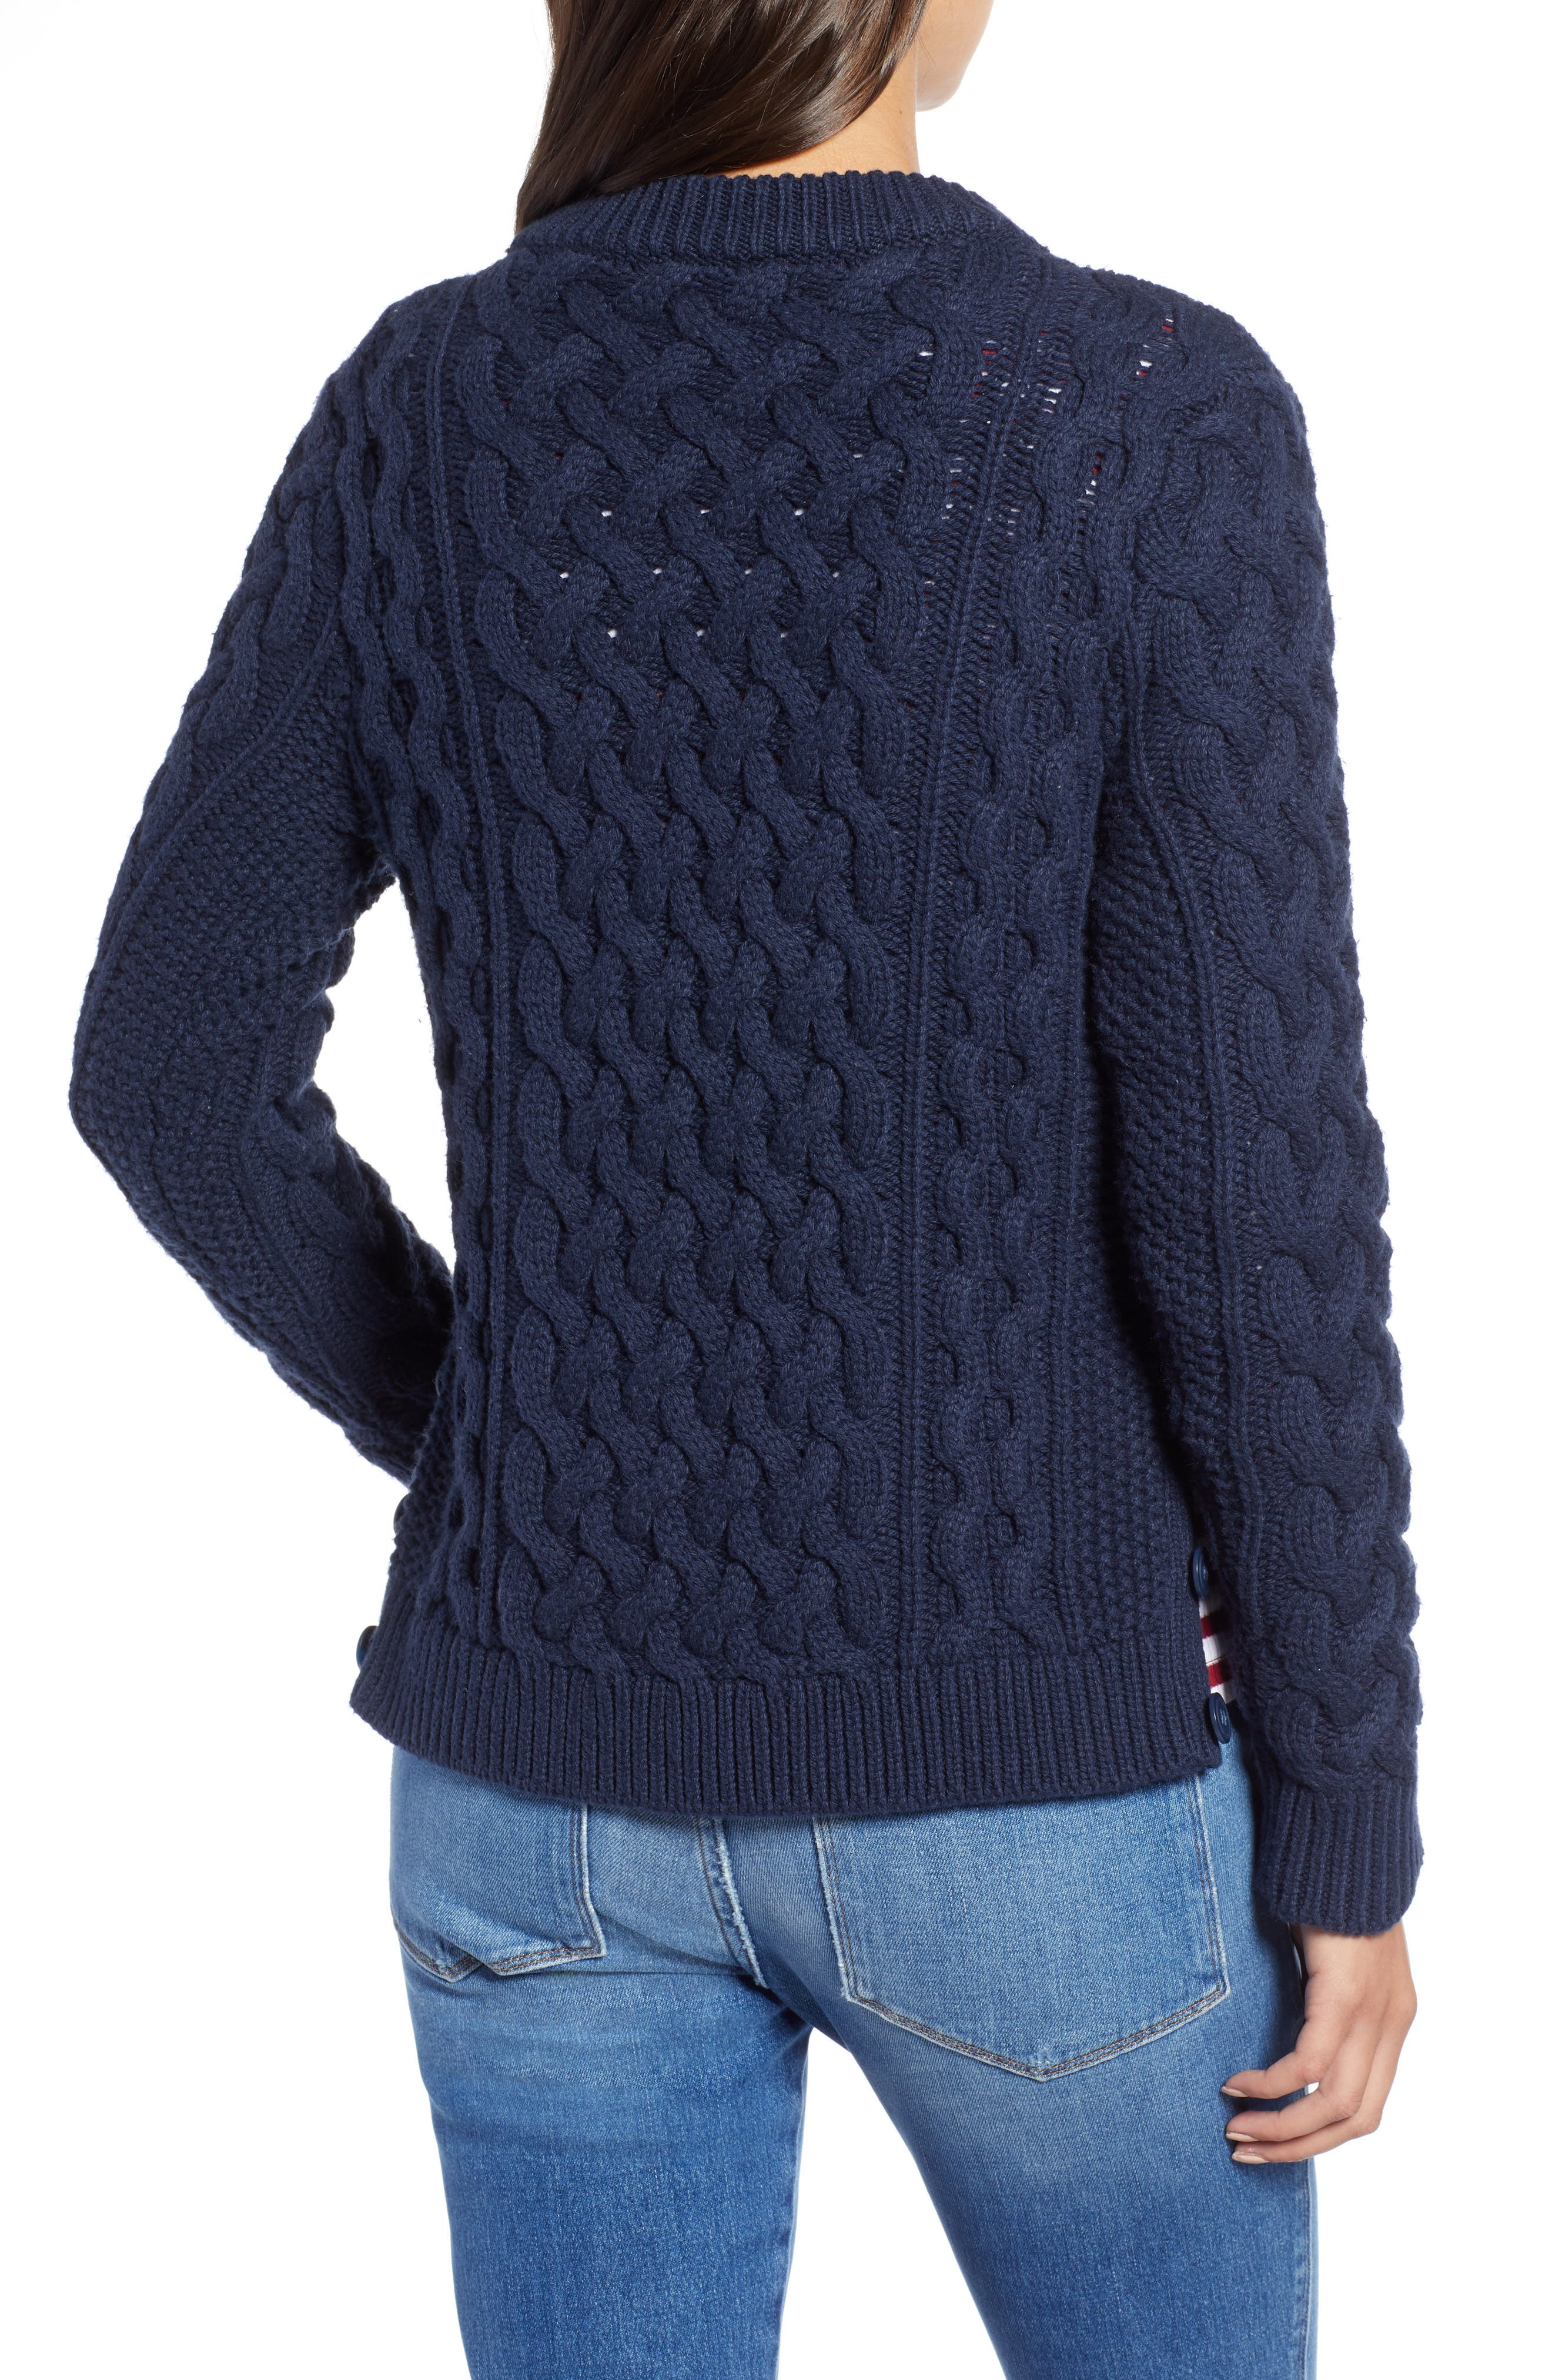 Fisherwoman Crewneck Pullover Sweater,                             Alternate thumbnail 2, color,                             410